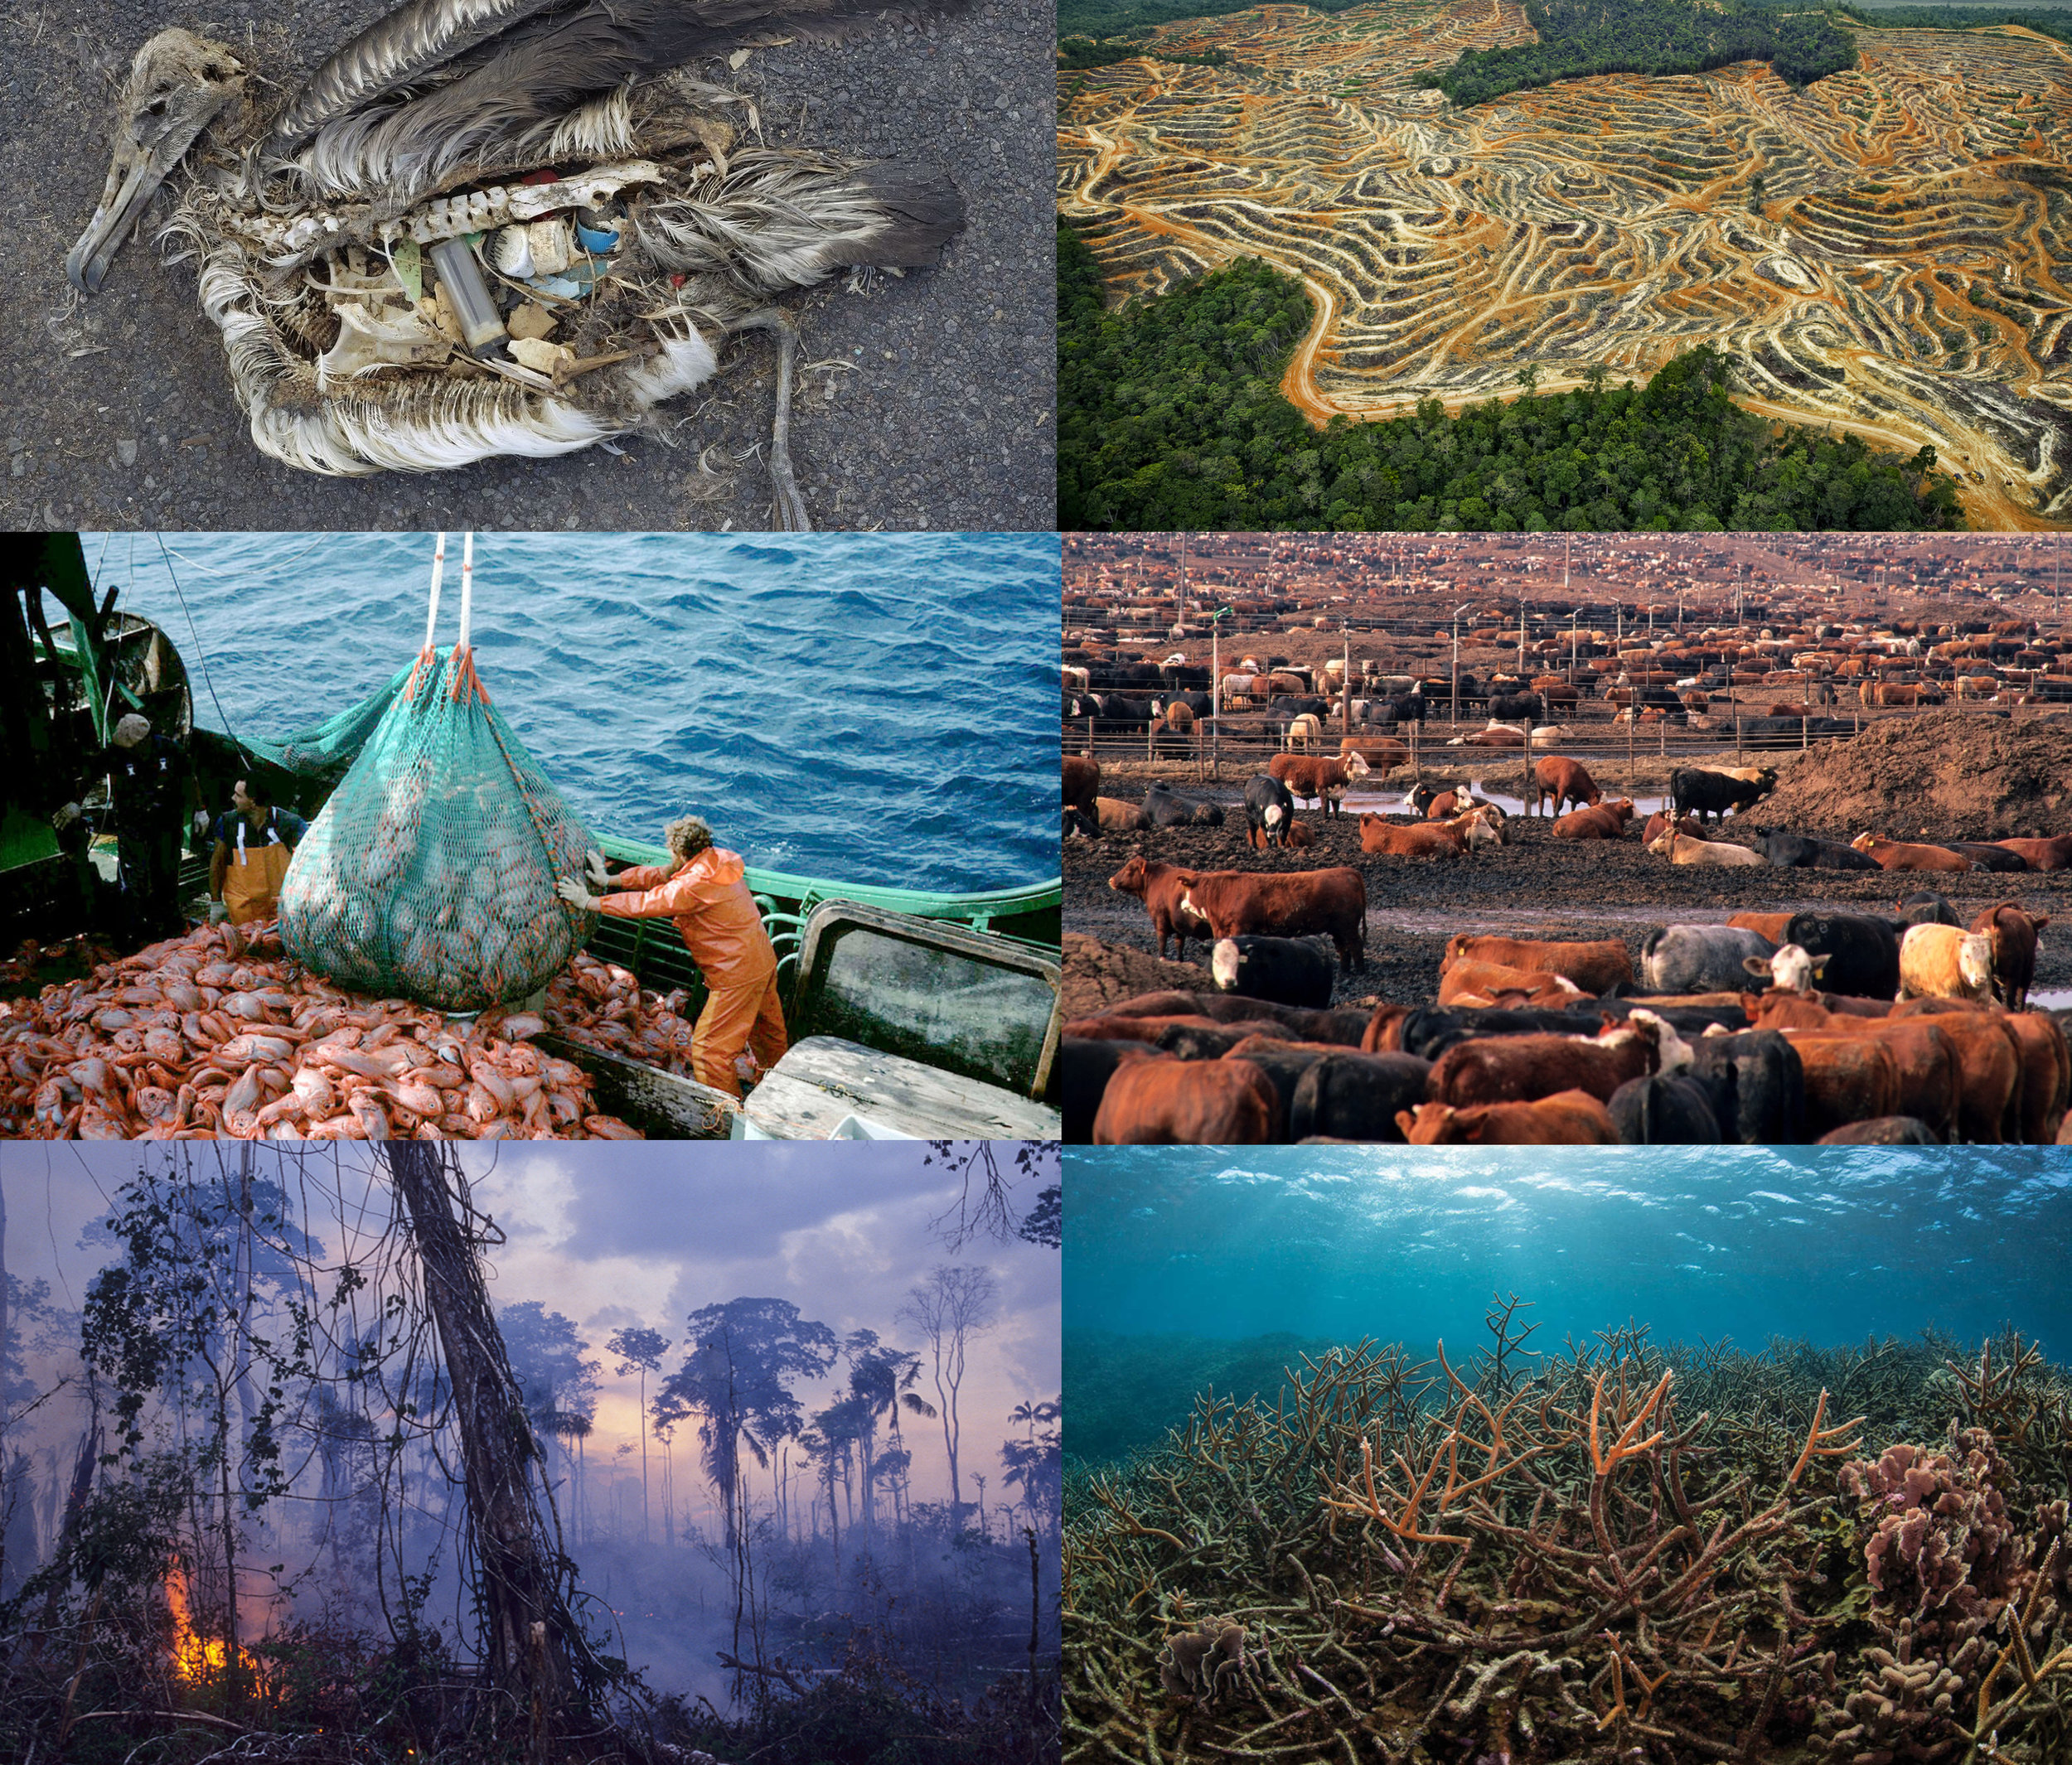 From Left to RIght : PLASTICS POLLUTION, PALM OIL FARMS CAUSING RAINFOREST DESTRUCTION, mass OVERFISHING leading to ocean SPECIES' EXTINCTION, METHANE POLLUTION FROM INDUSTRIAL CATTLE PRODUCTION, THE CLEAR CUTTING OF FORESTS, AND CORAL BLEACHING DUE TO WARMING SEAS.